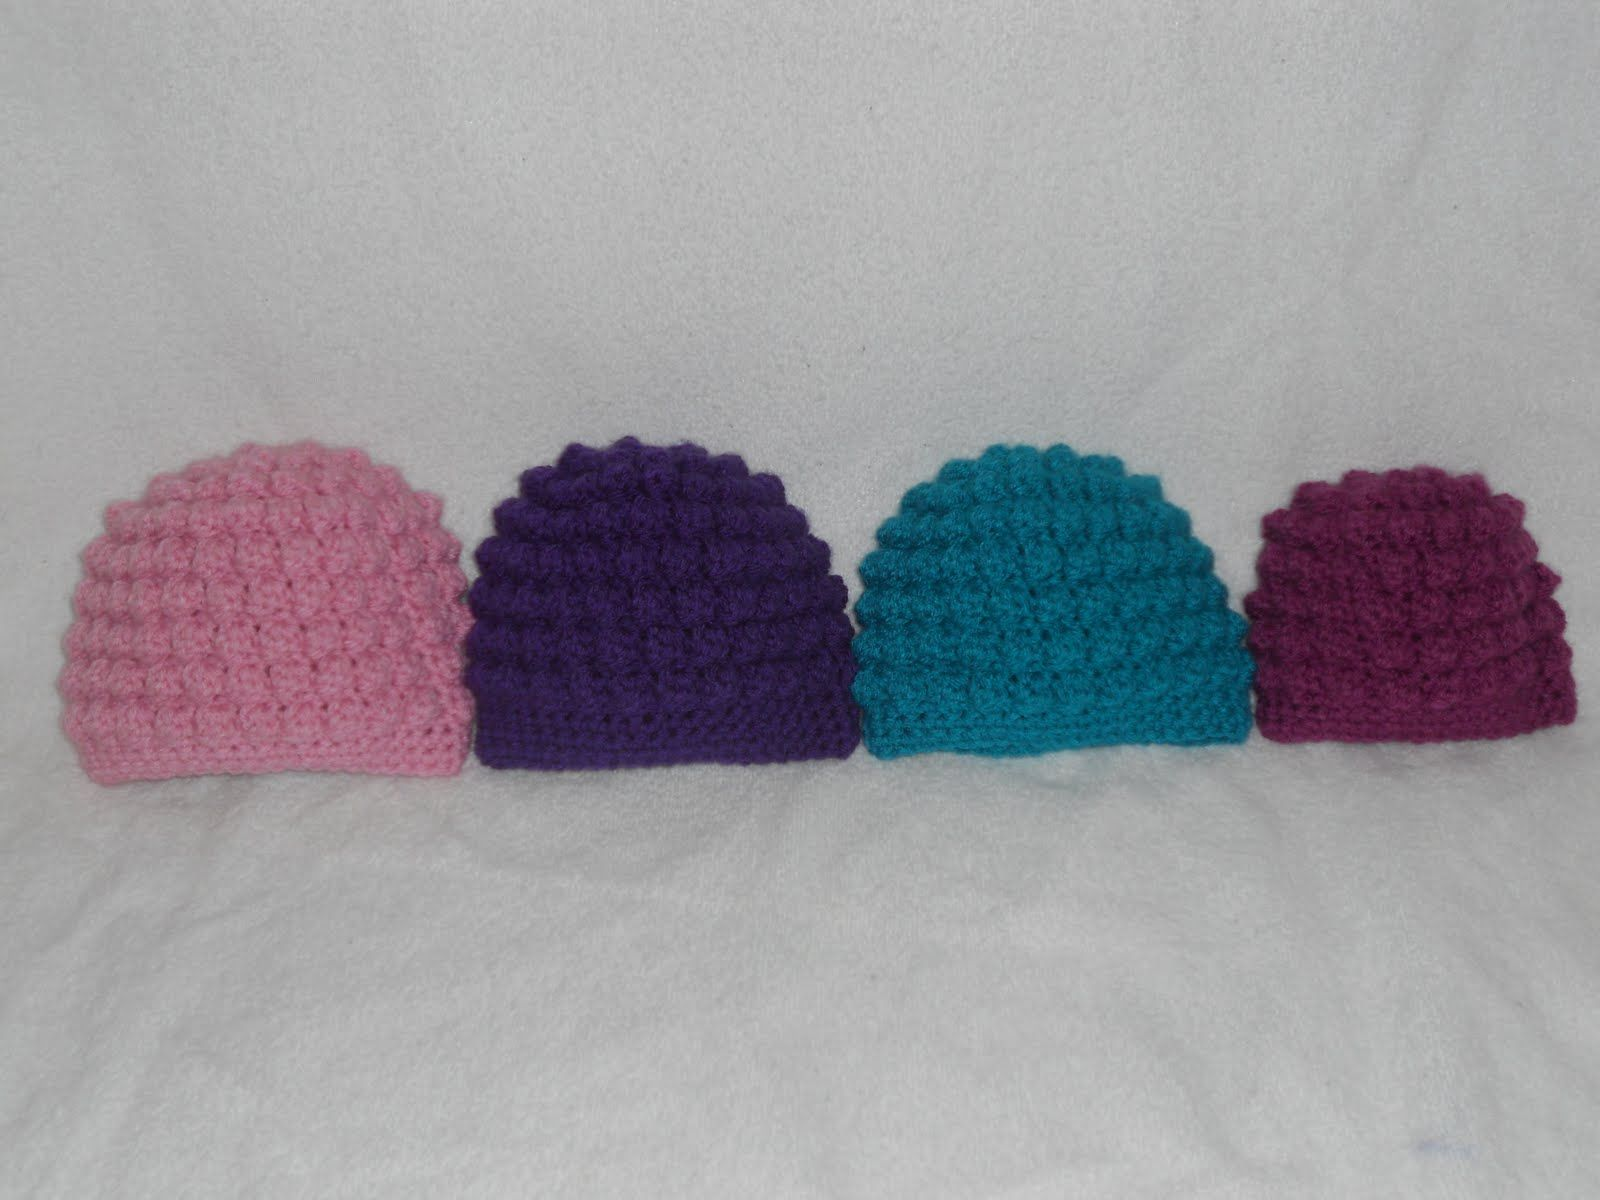 Free crochet baby hat patterns here is my pattern for the bumpy free crochet baby hat patterns here is my pattern for the bumpy bobble beanie please bankloansurffo Choice Image